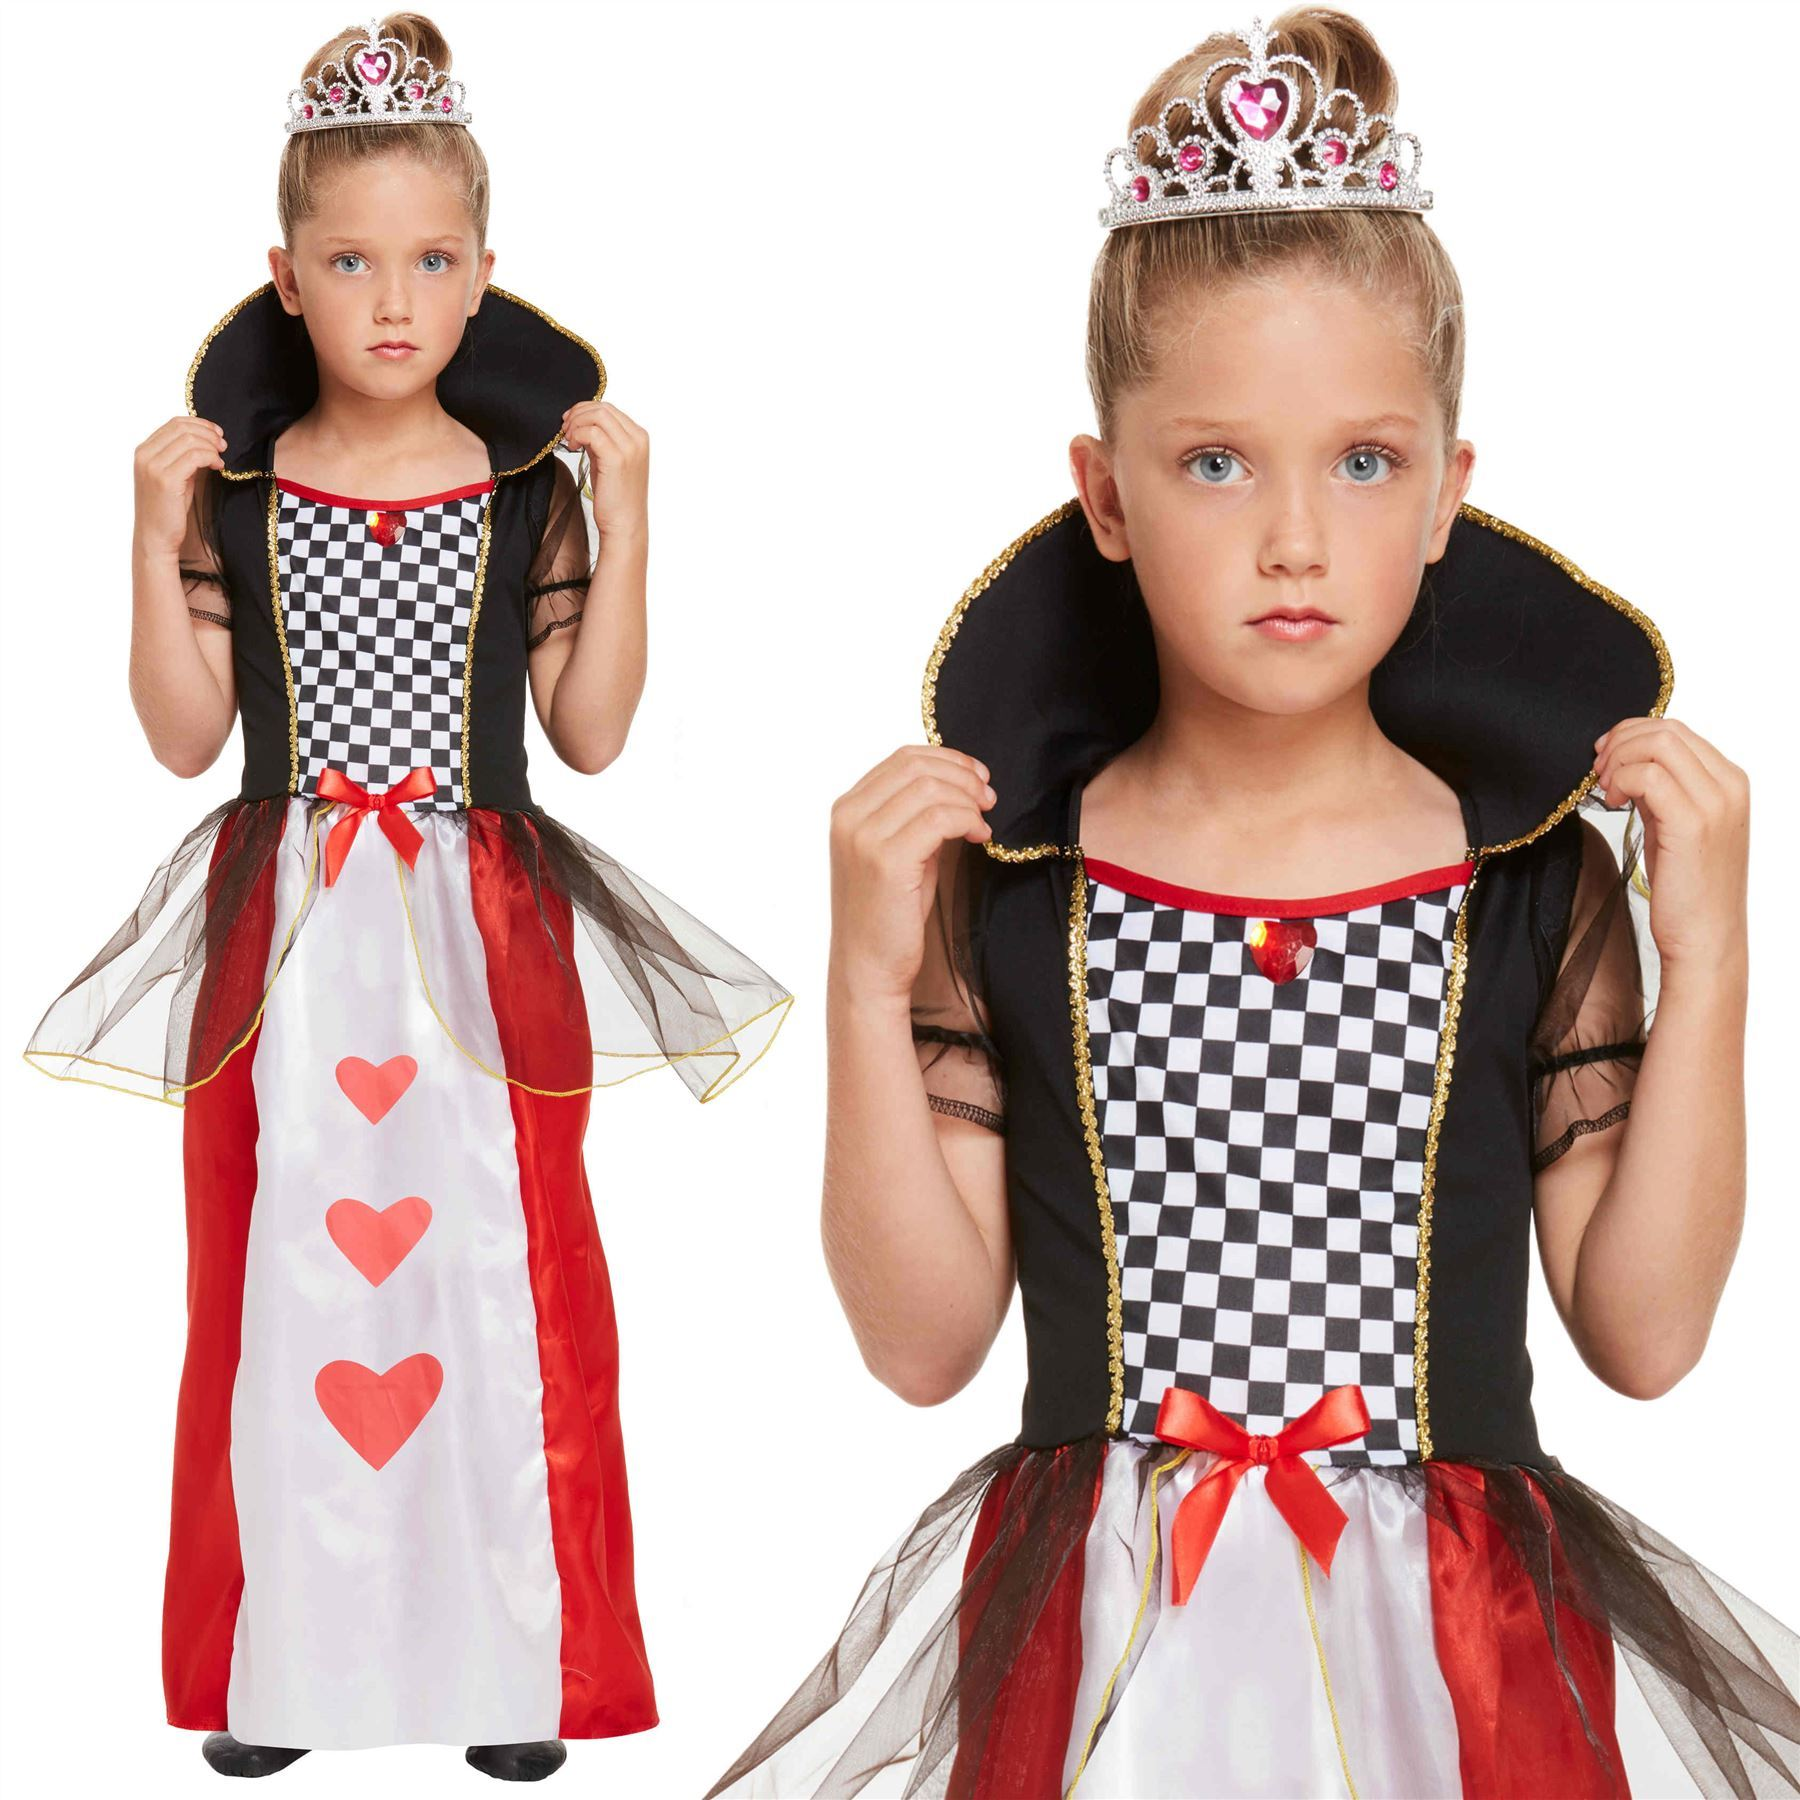 GIRLS/HISTORY/ Children's Queen of Hearts Costume